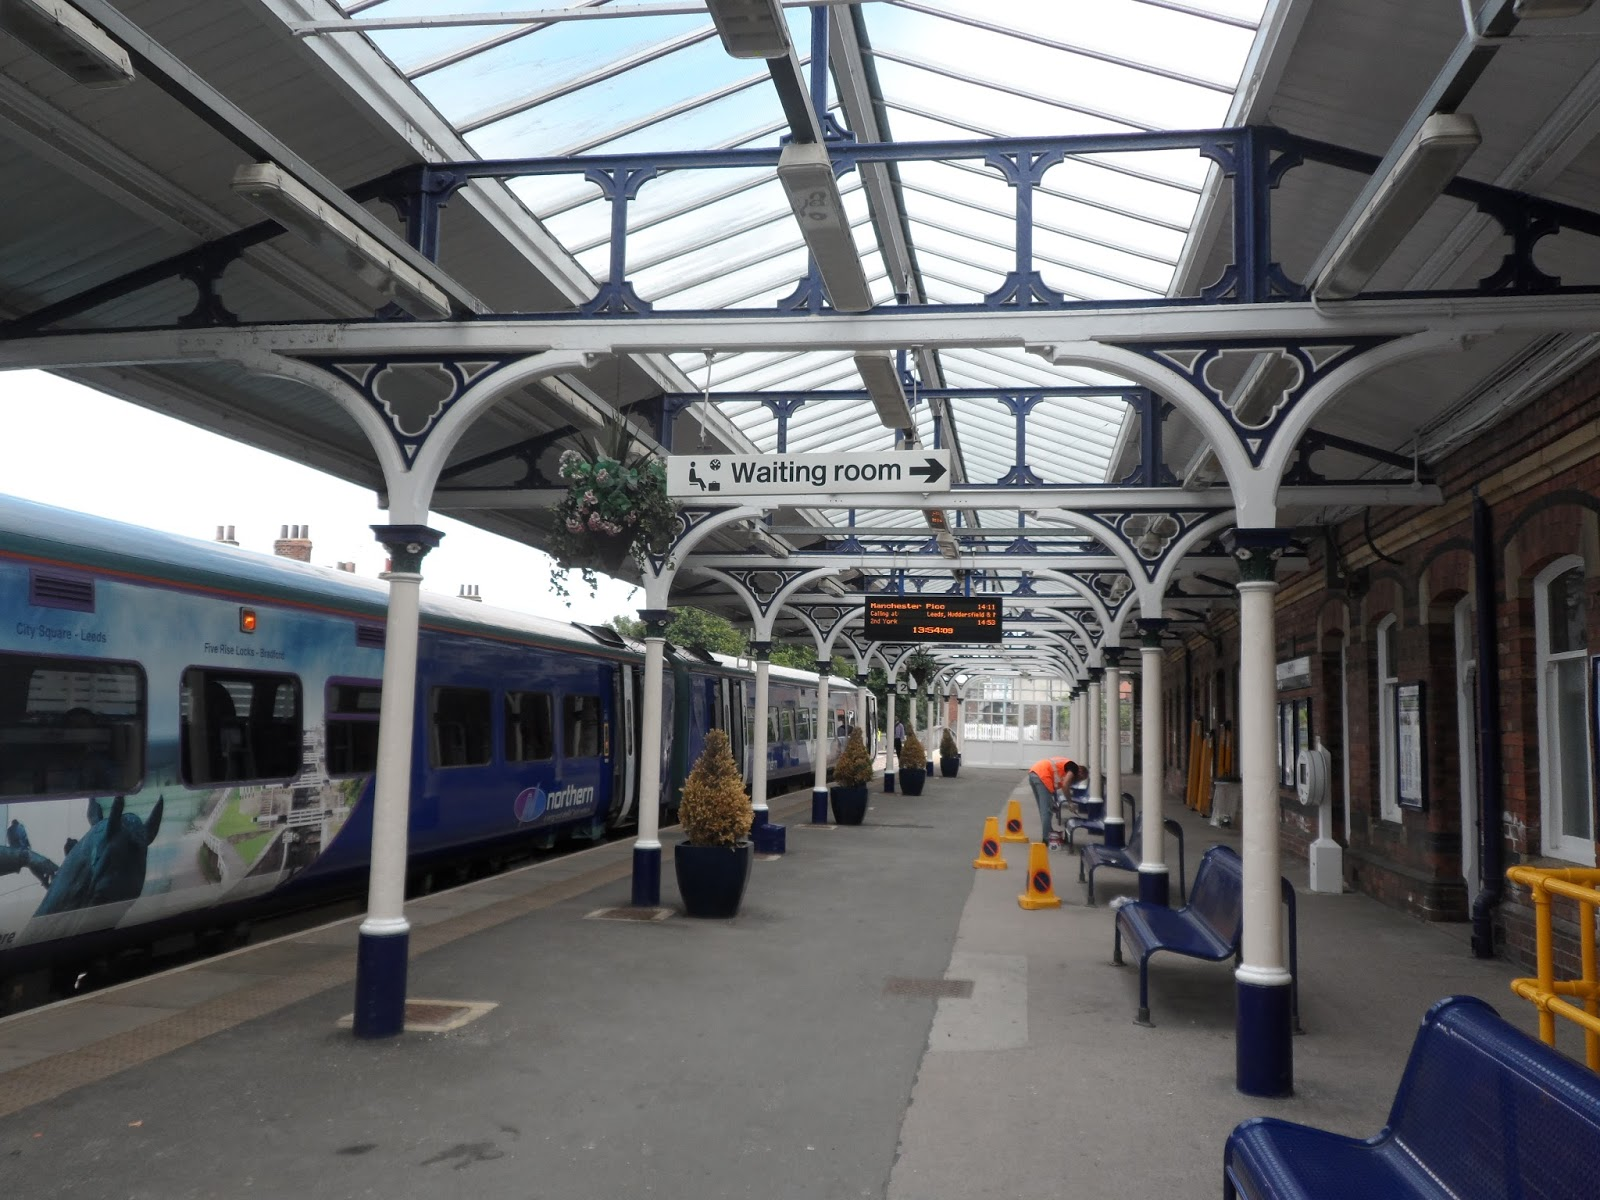 When commuters return to work after christmas and new year break they will return to fair rises.  Selby is set to suffer more than other regions across the country whose average ticket rises are set to peak at 2.1% whilst Selby has been hit with 2.4% and 2.5% rises.  Season tickets between the journey ofSelby and York will rise 2.41% from January from £1,296 to £1,328. And forthose commuters travellingto Leeds will seethe cost of their ticket rising by2.18% from £1,436 to £1,468 per year.  The conservative government state that the rises are fair due to the largest investment in rail services ever. However the shadow government state that with wages failing to rise it is impossible for the commuters to find more funds to pay higher travel costs to work. Ed Miliband has stated that he is set to tackle and halt railway price increases. He also had pressure on him to consider nationalising or re nationalising part of the Uk's rail network.  British fares are renowned for being the highest in Europe. In some of Britain s larger towns average yearly commuter fares travelling to work have hit £5,000  A standard fare from Selby to Manchester is approximately £36 whilst in Italy you can travel over 250 miles for the same price. Peter Trever a railway maintenance from Goole told us that the investment in to the railways is vital as more people choose to use the railways. However he thinks that the continued rail increases cannot continue because they are out pricing wages increases for commuters. Commuters cannot afford the fare increases year on year. It has to stop sometime.